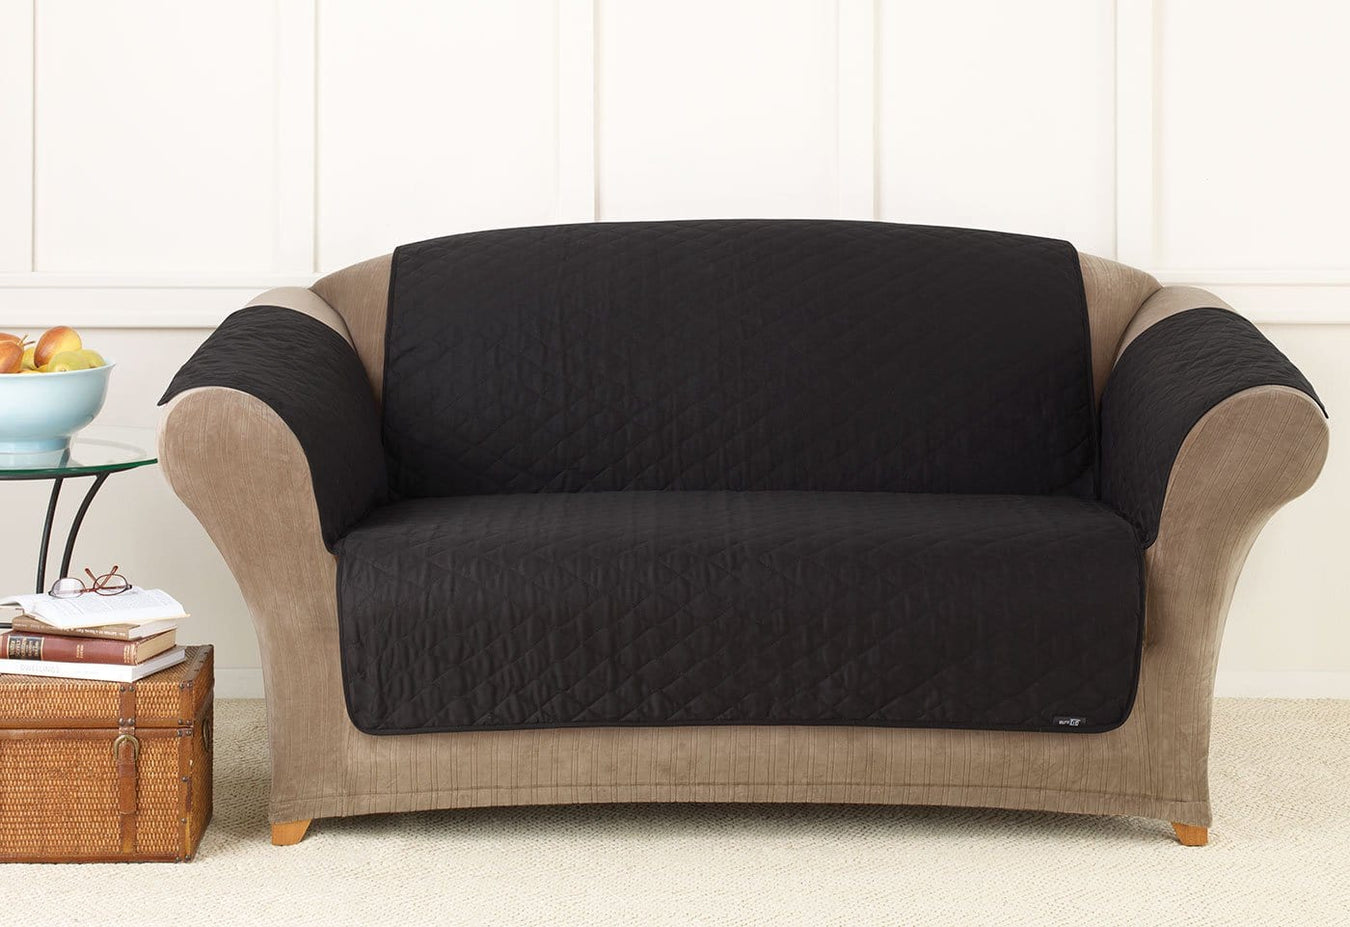 Furniture Friend Loveseat Furniture Cover